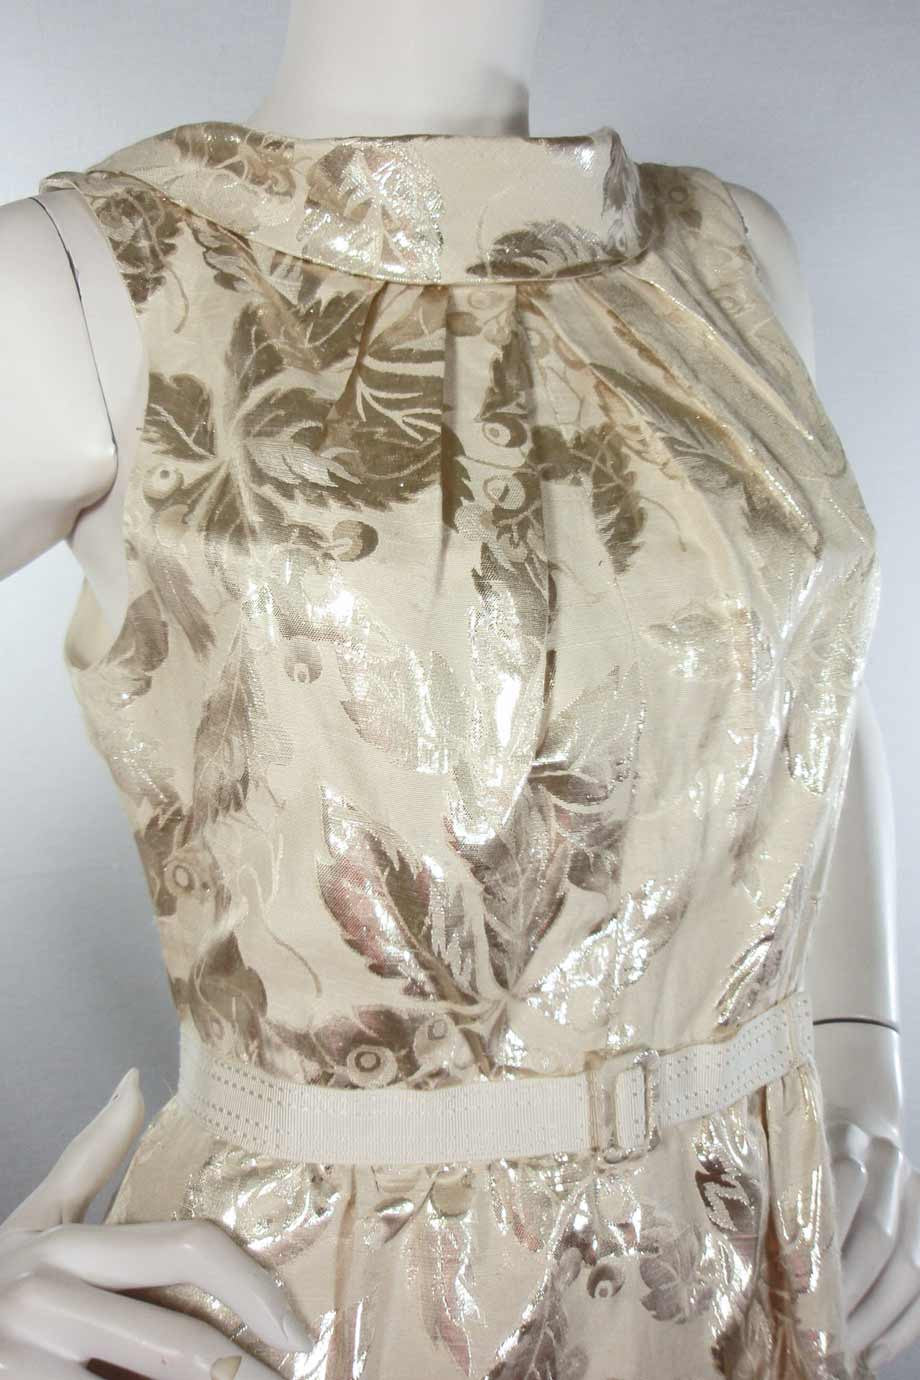 Charles Chang Lima Metallic Silver + Beige Leaf Print Dress / Sz 10 - Style Therapy  - 2